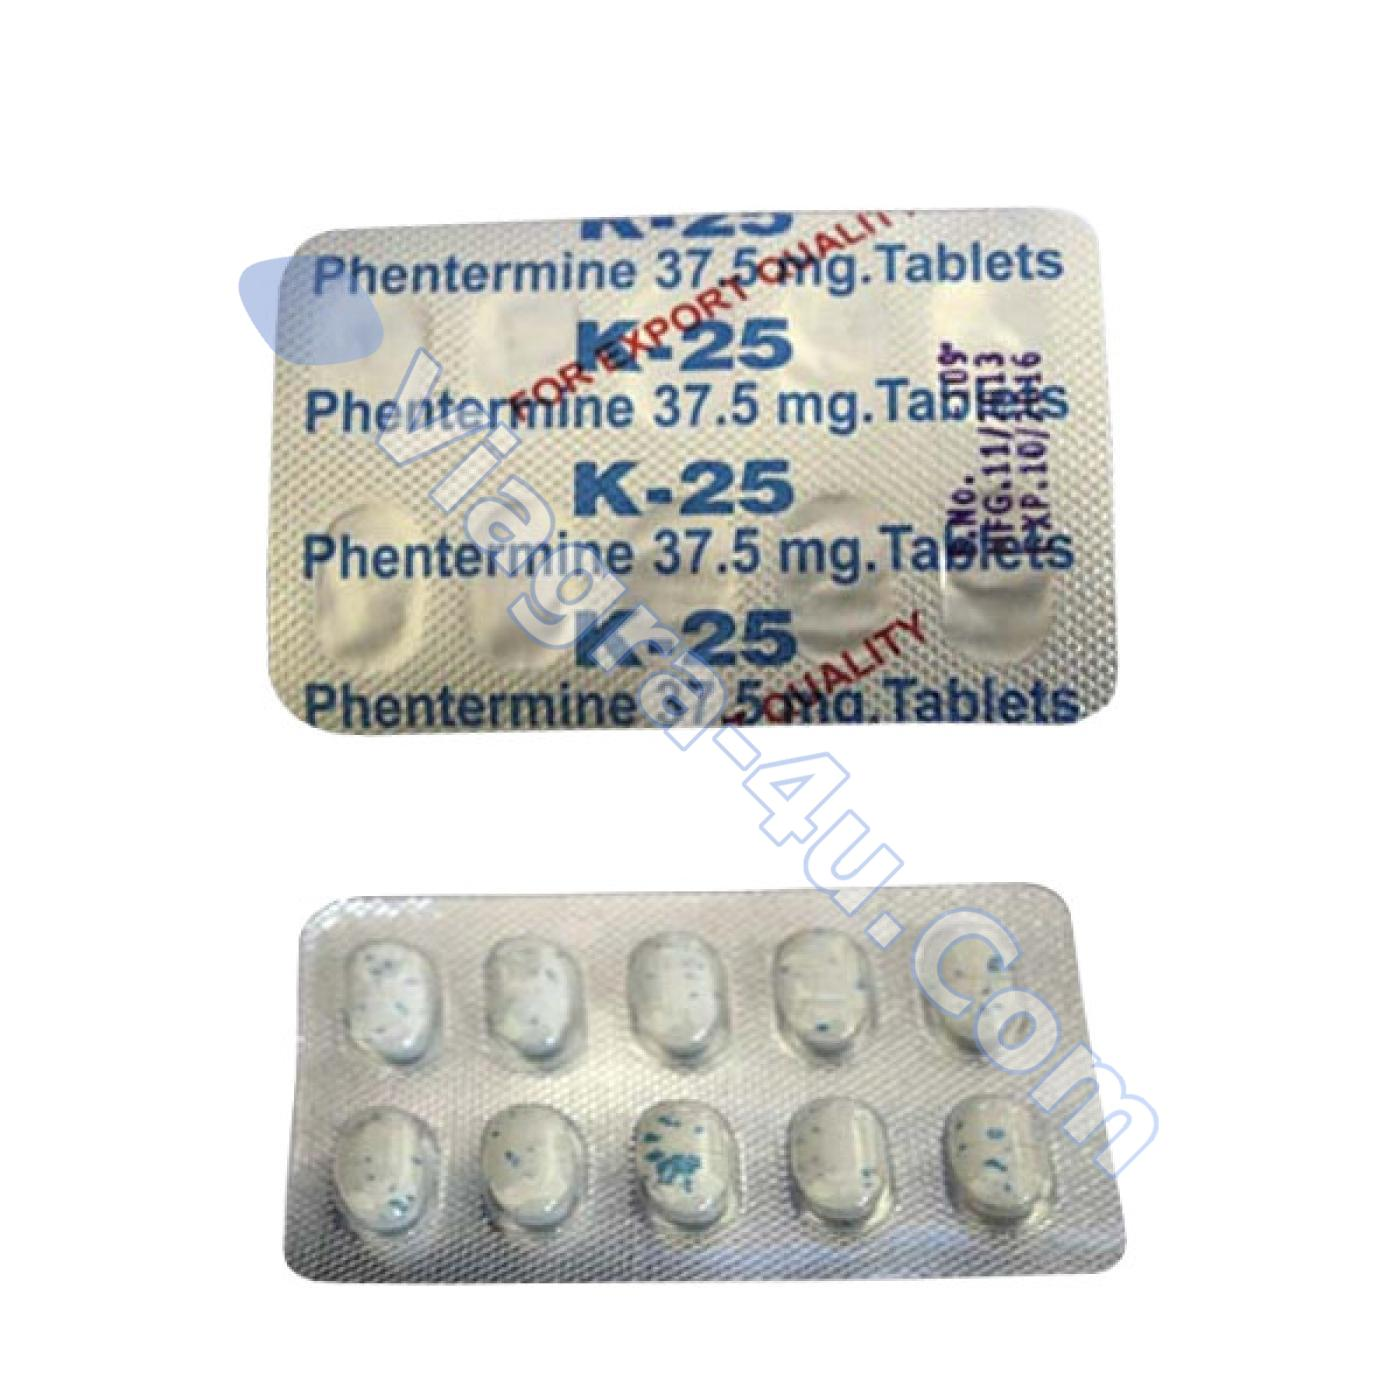 Cheap herbal phentermine -  Generic Adipex Phentermine 37 5mg